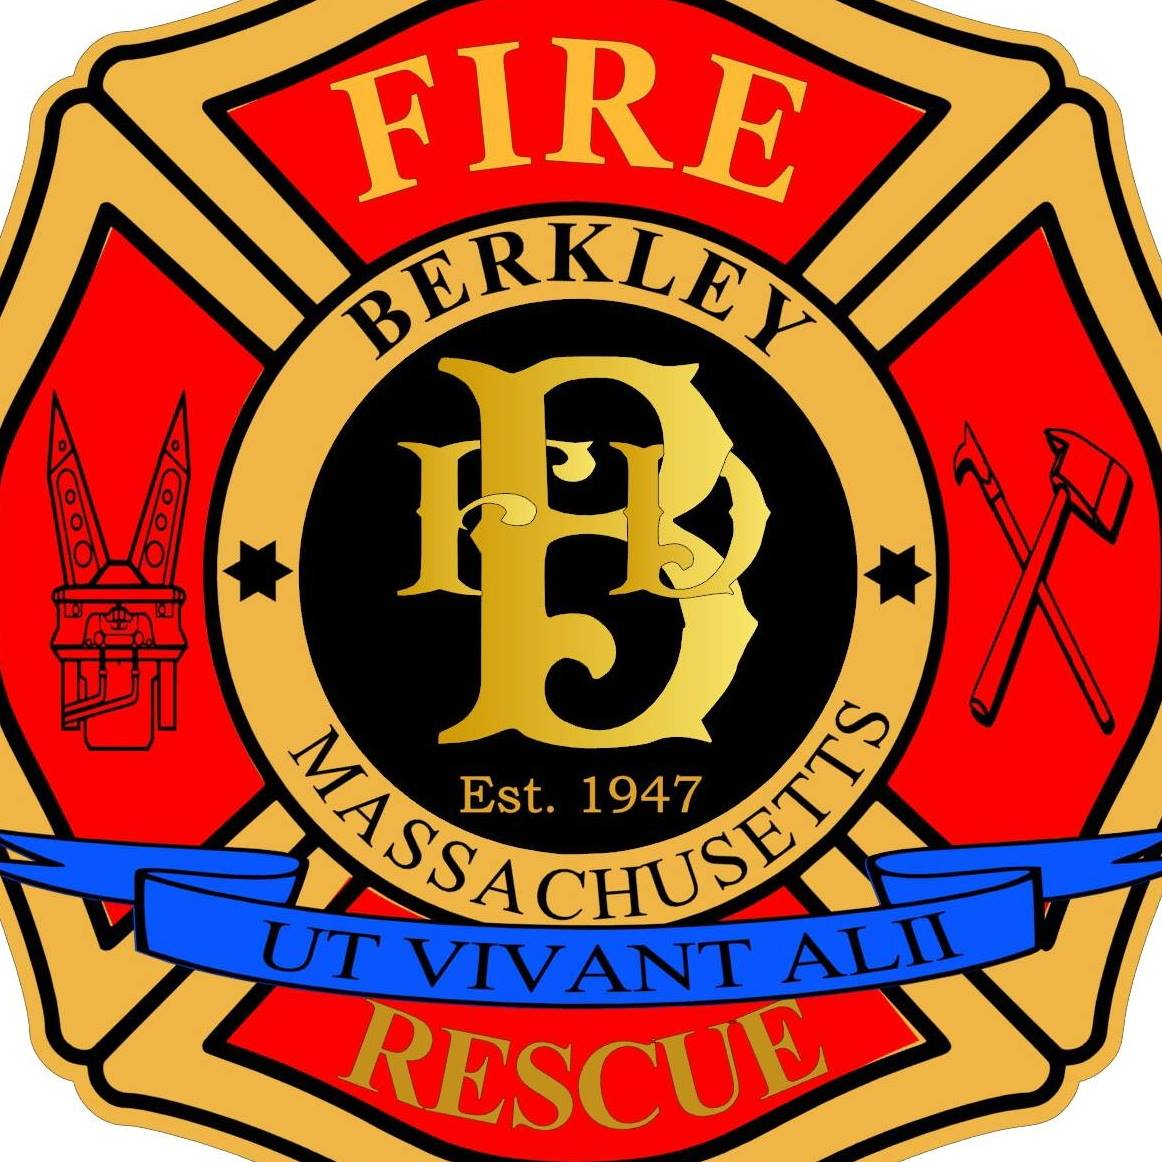 Berkley Fire Department Details Incident Response to Bus Crash